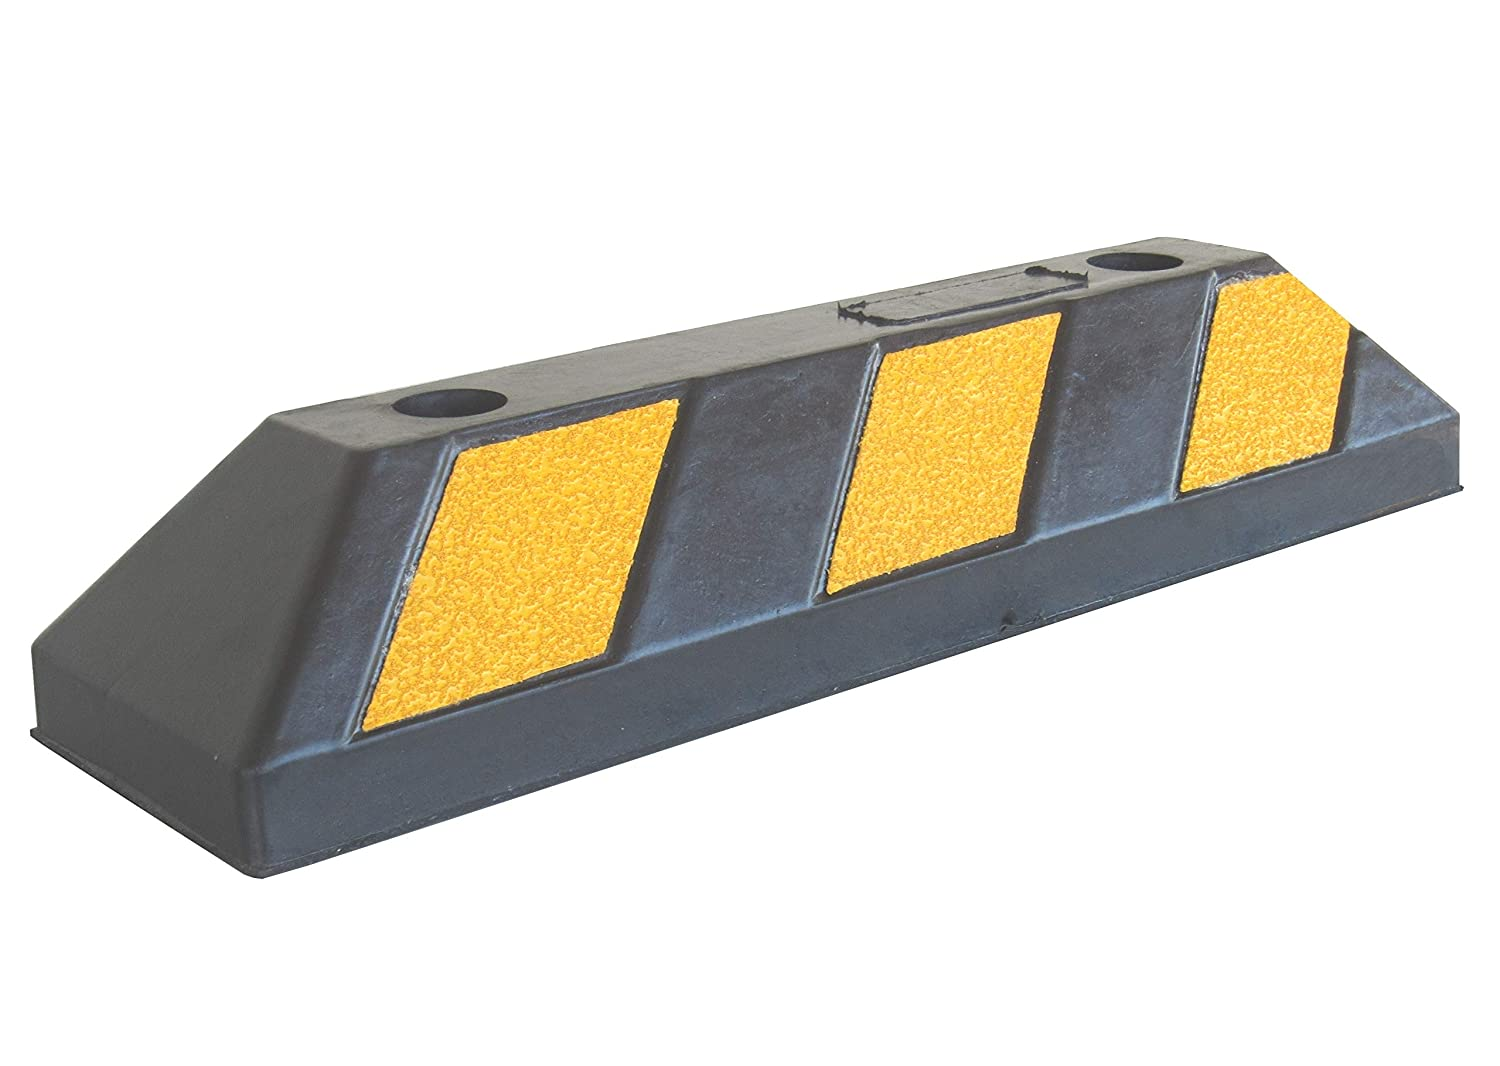 RWS-4 Rubber Parking Wheel Stop for Commercial and Domestic Car Parks and Private Garages, Black and Yellow colour, 55x15x10 cm (pack of 1) ESR